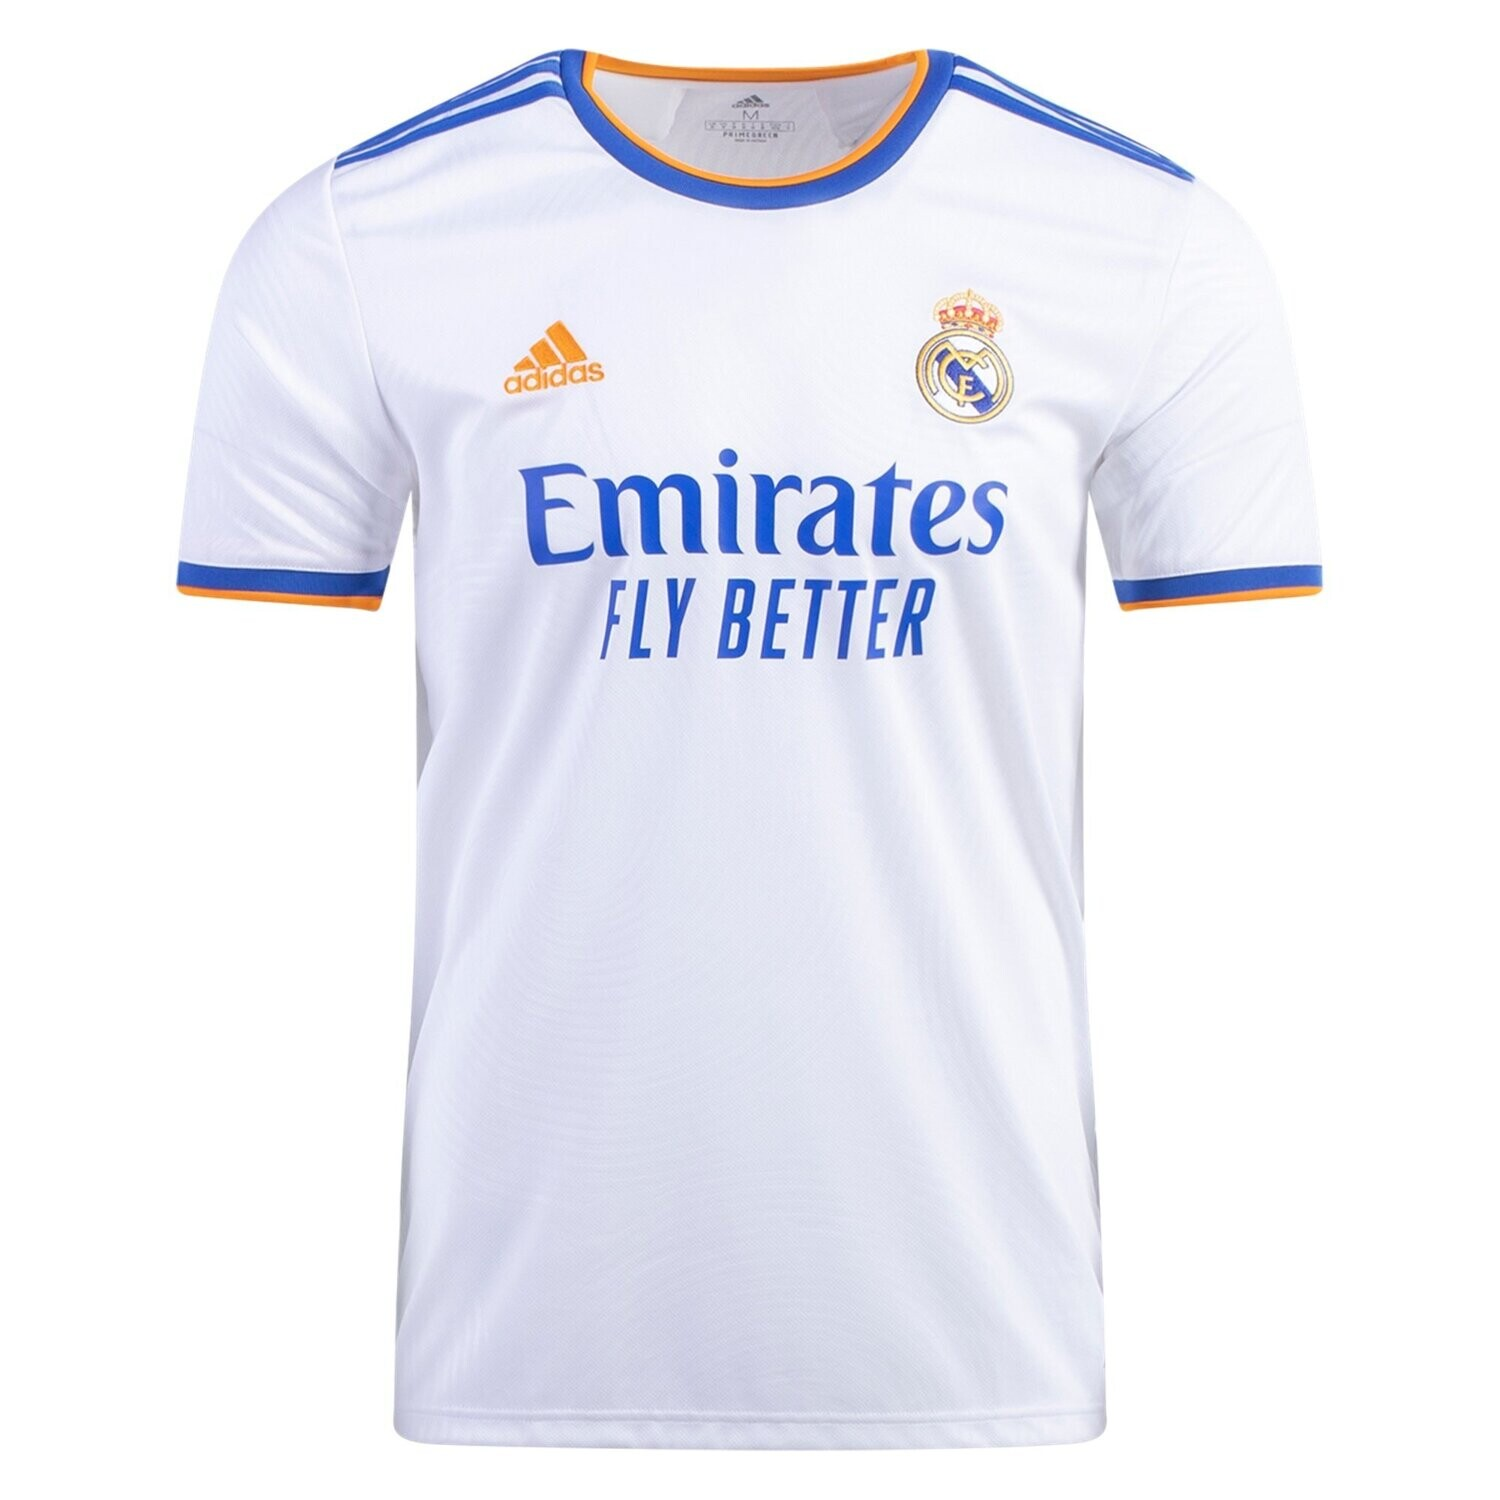 Real Madrid Home Jersey Shirt 21-22